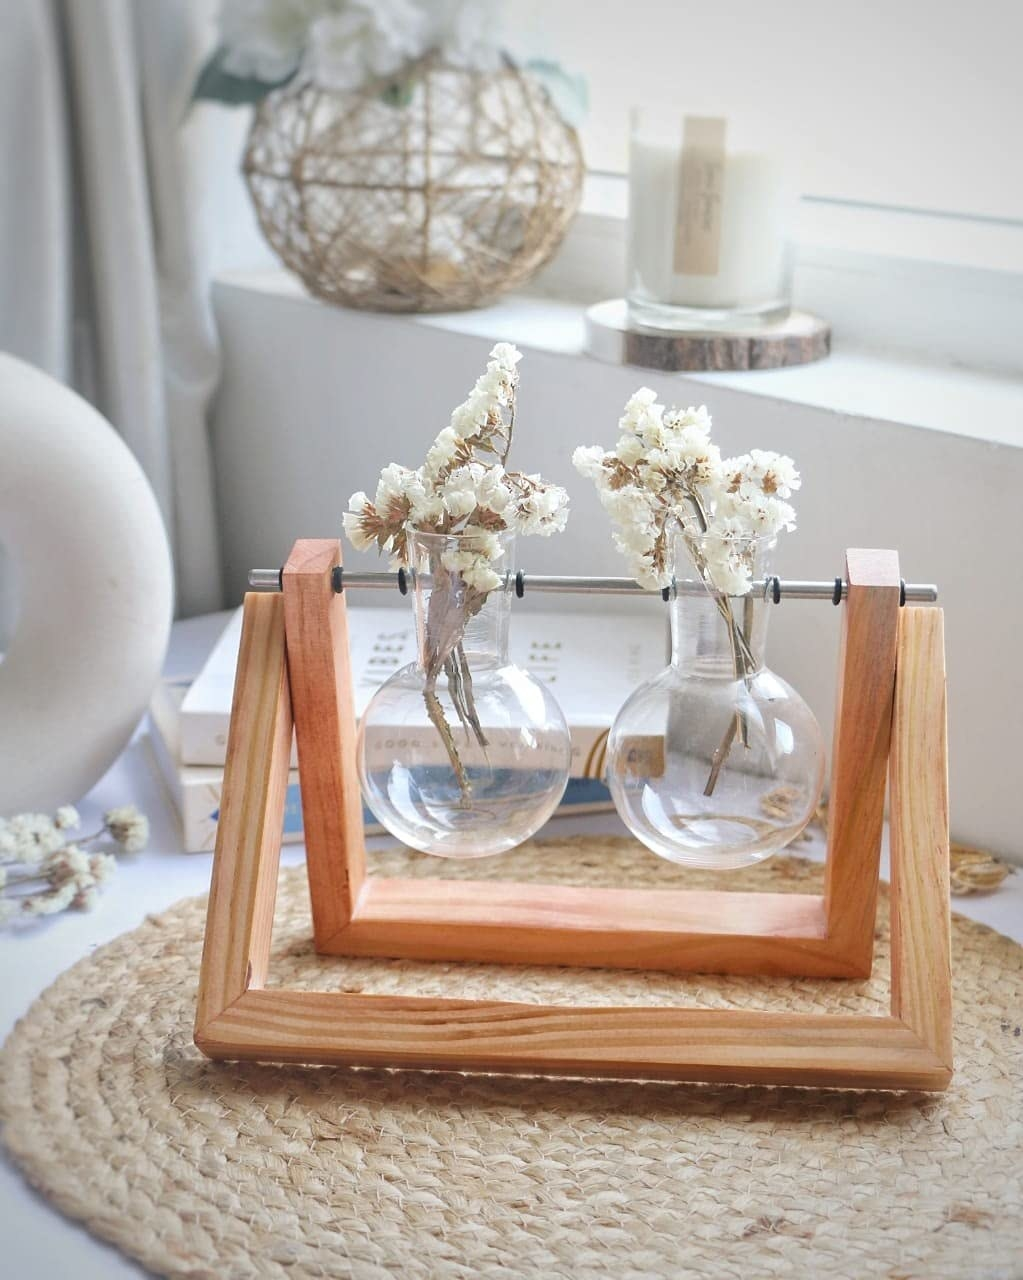 A wooden two-legged table stand with two glass round bottom flasks with some white flowers in them